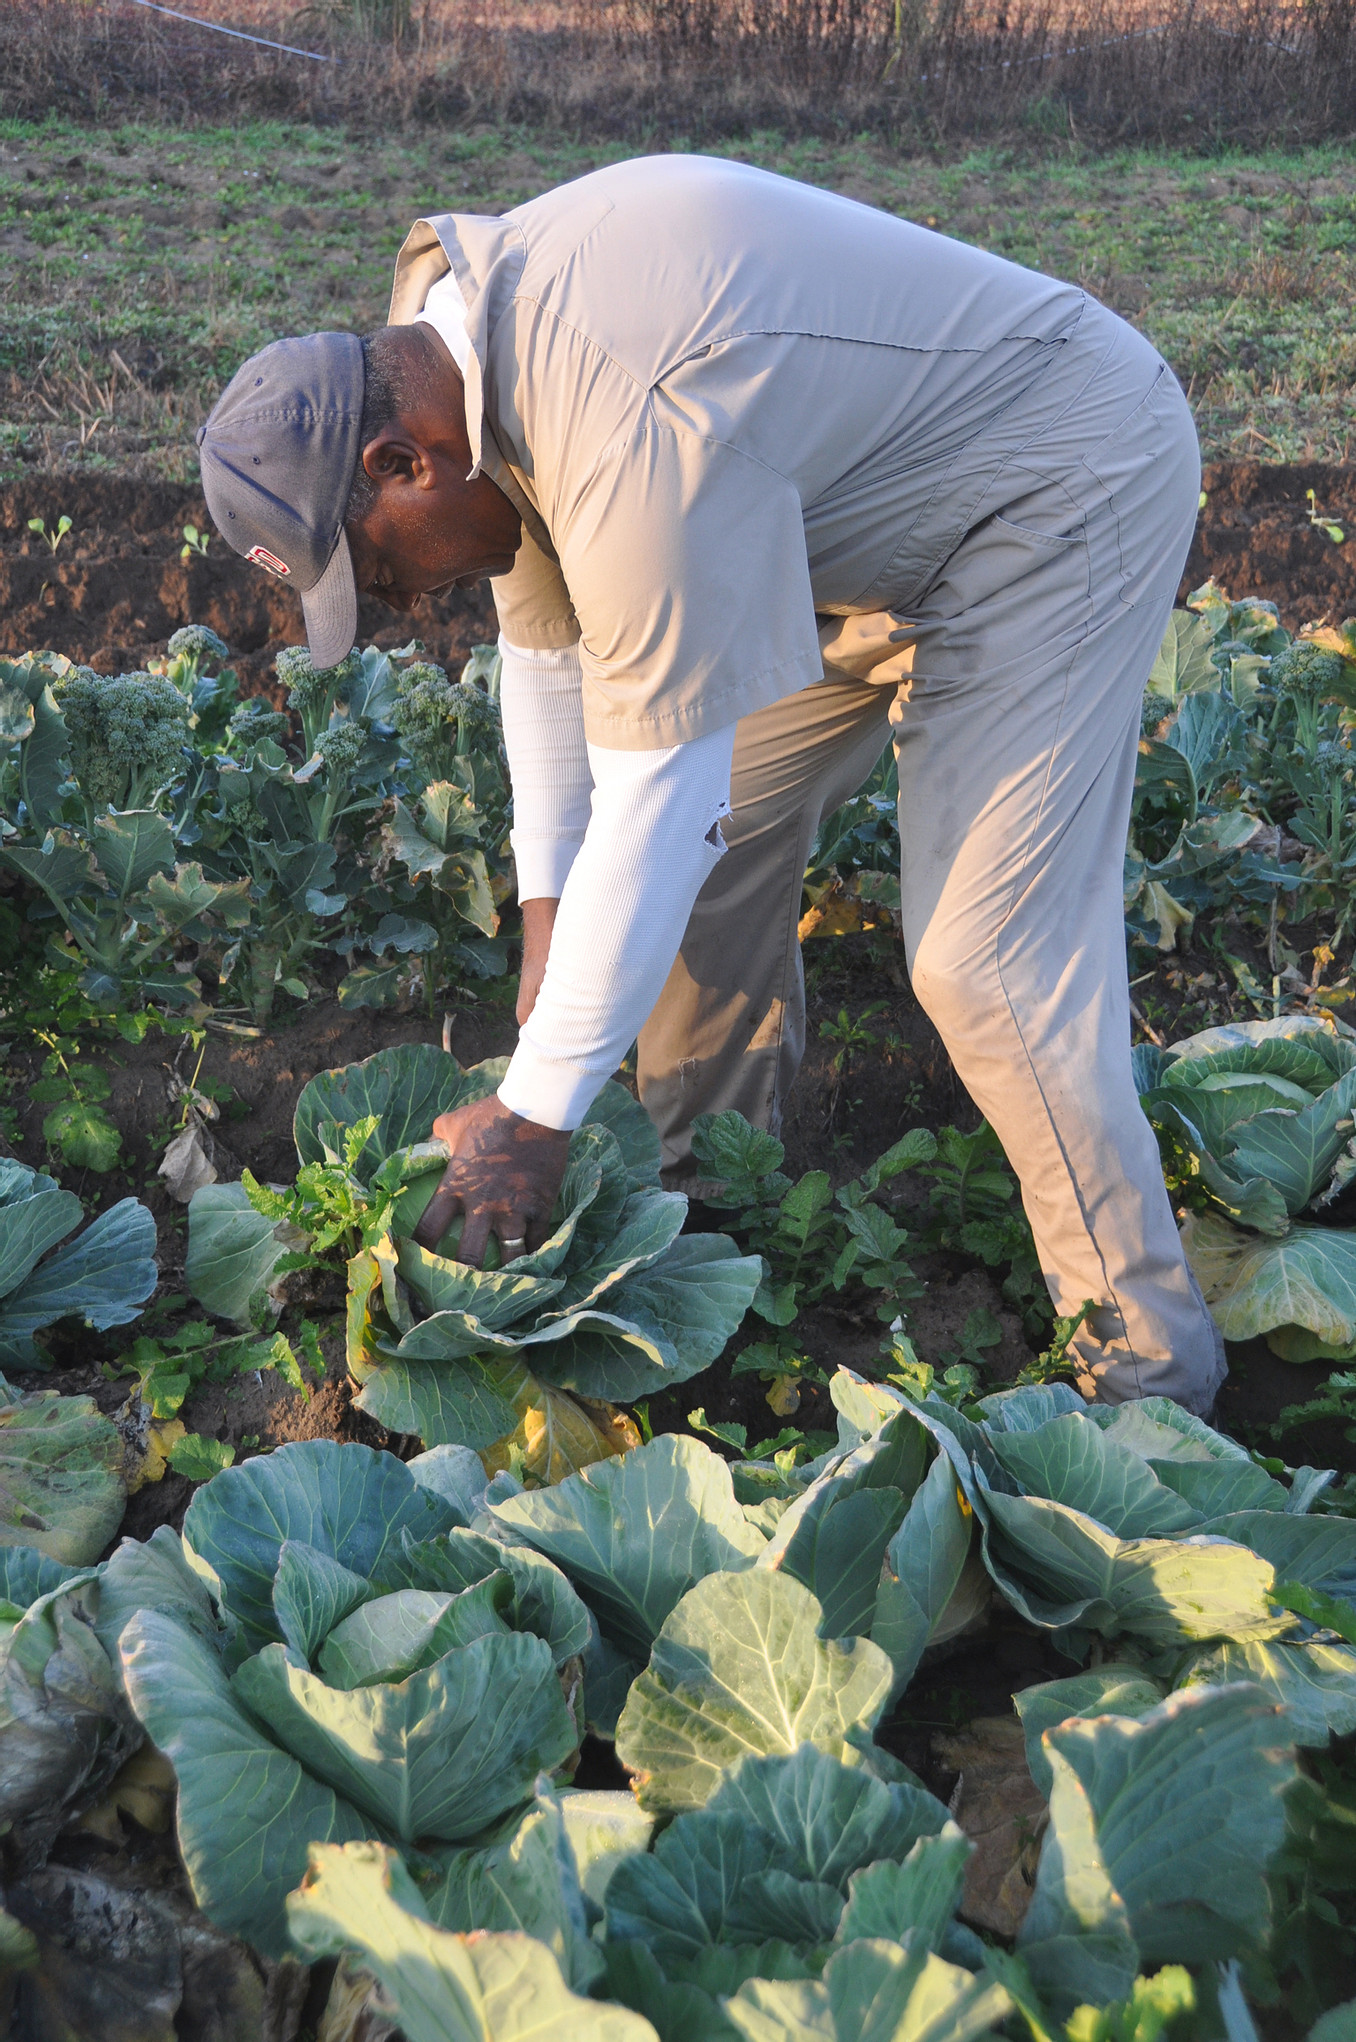 Gullah Geechee Cooperative Builds with Food Safety Focus